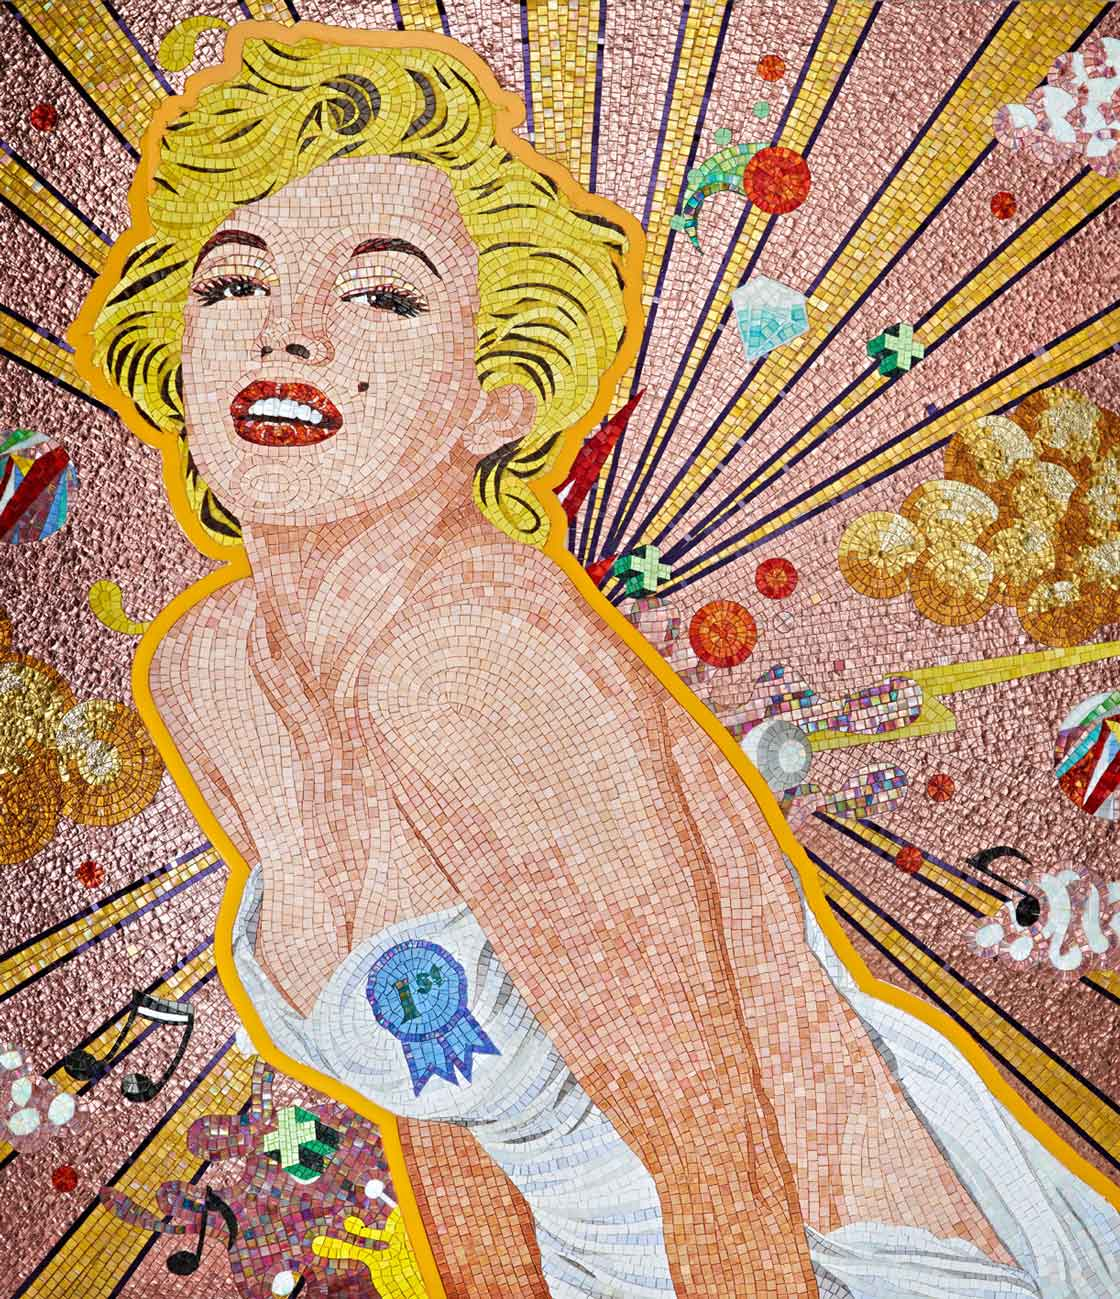 PICTOCLUB Mosaic - MARILYN POP - Sicis x Pictoclub